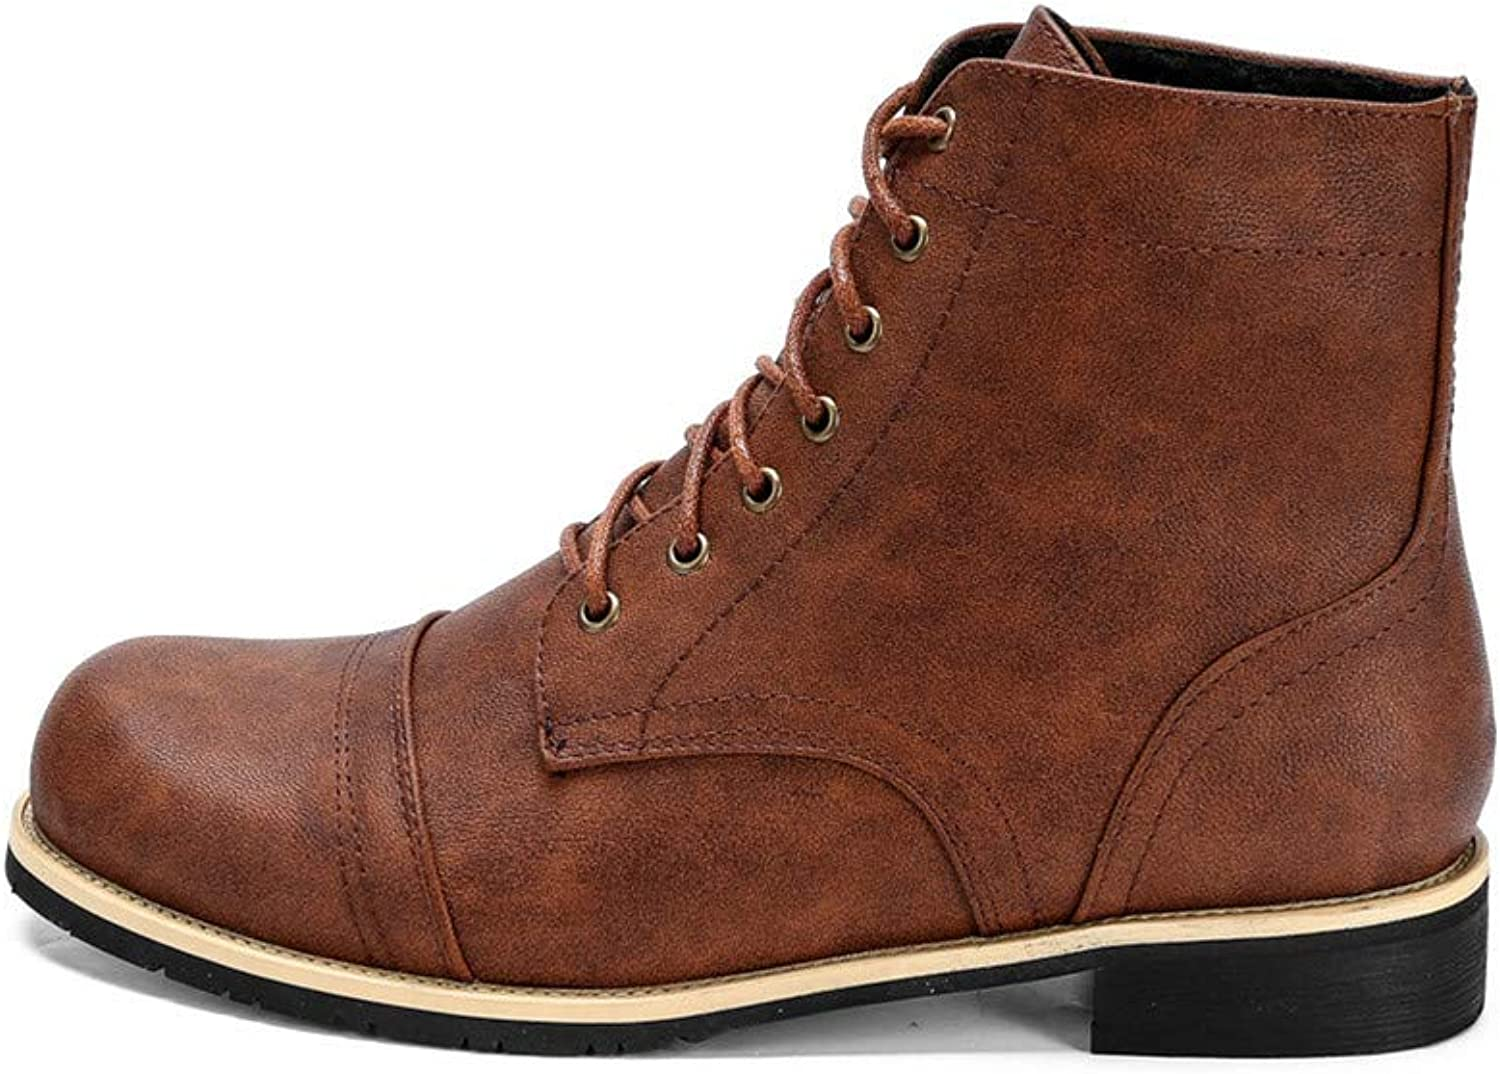 Jiahe Ankle Boots shoes for Men Lace Up Waterproof Leather Martin Boots Locomotive shoes Large Size Men's Boots,C,48